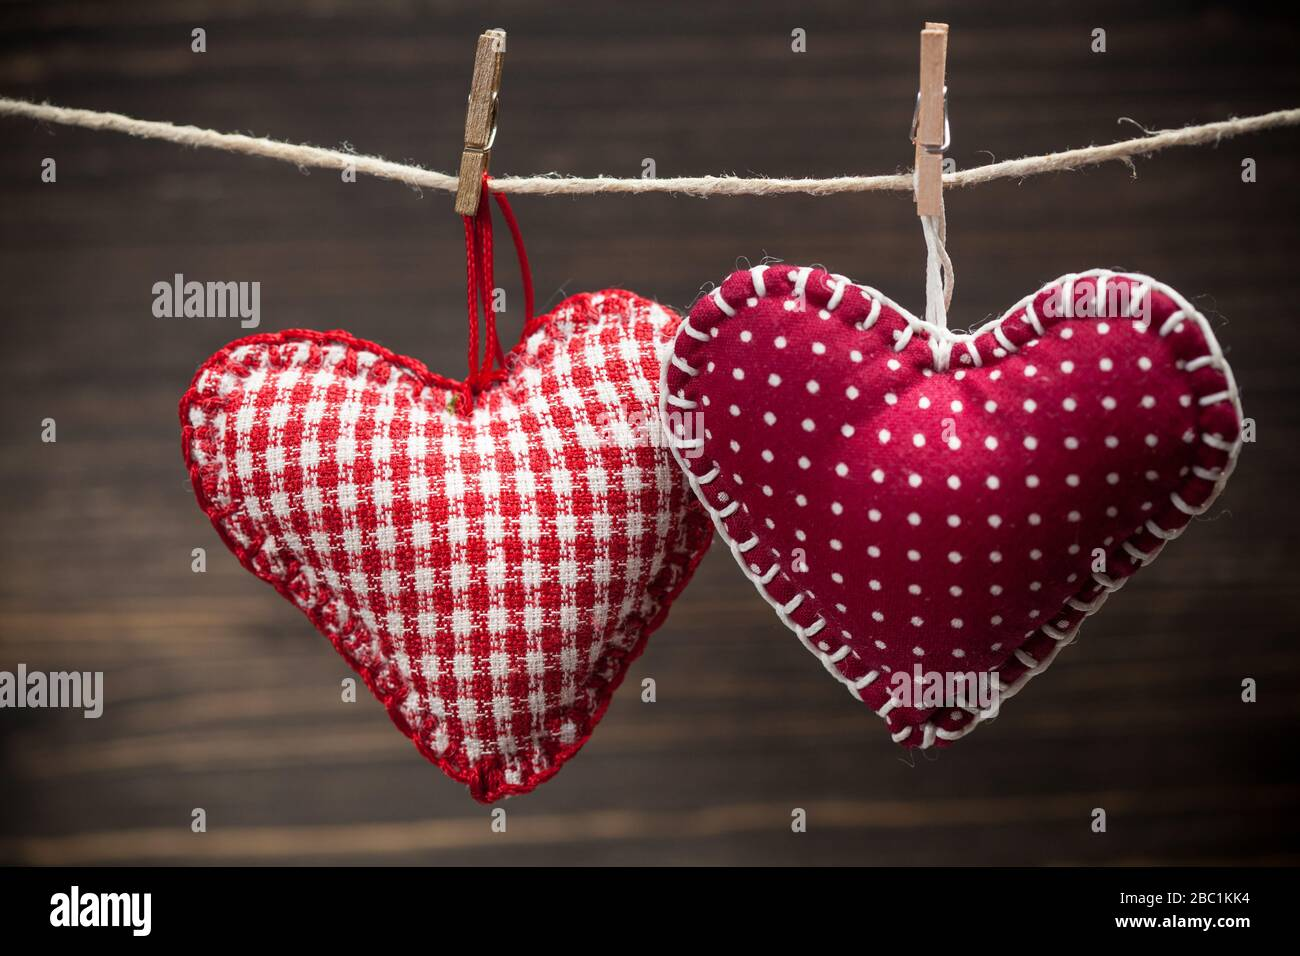 Colorful Fabric Hearts On Wood Backgrounds Valentine S Love Concept Stock Photo Alamy